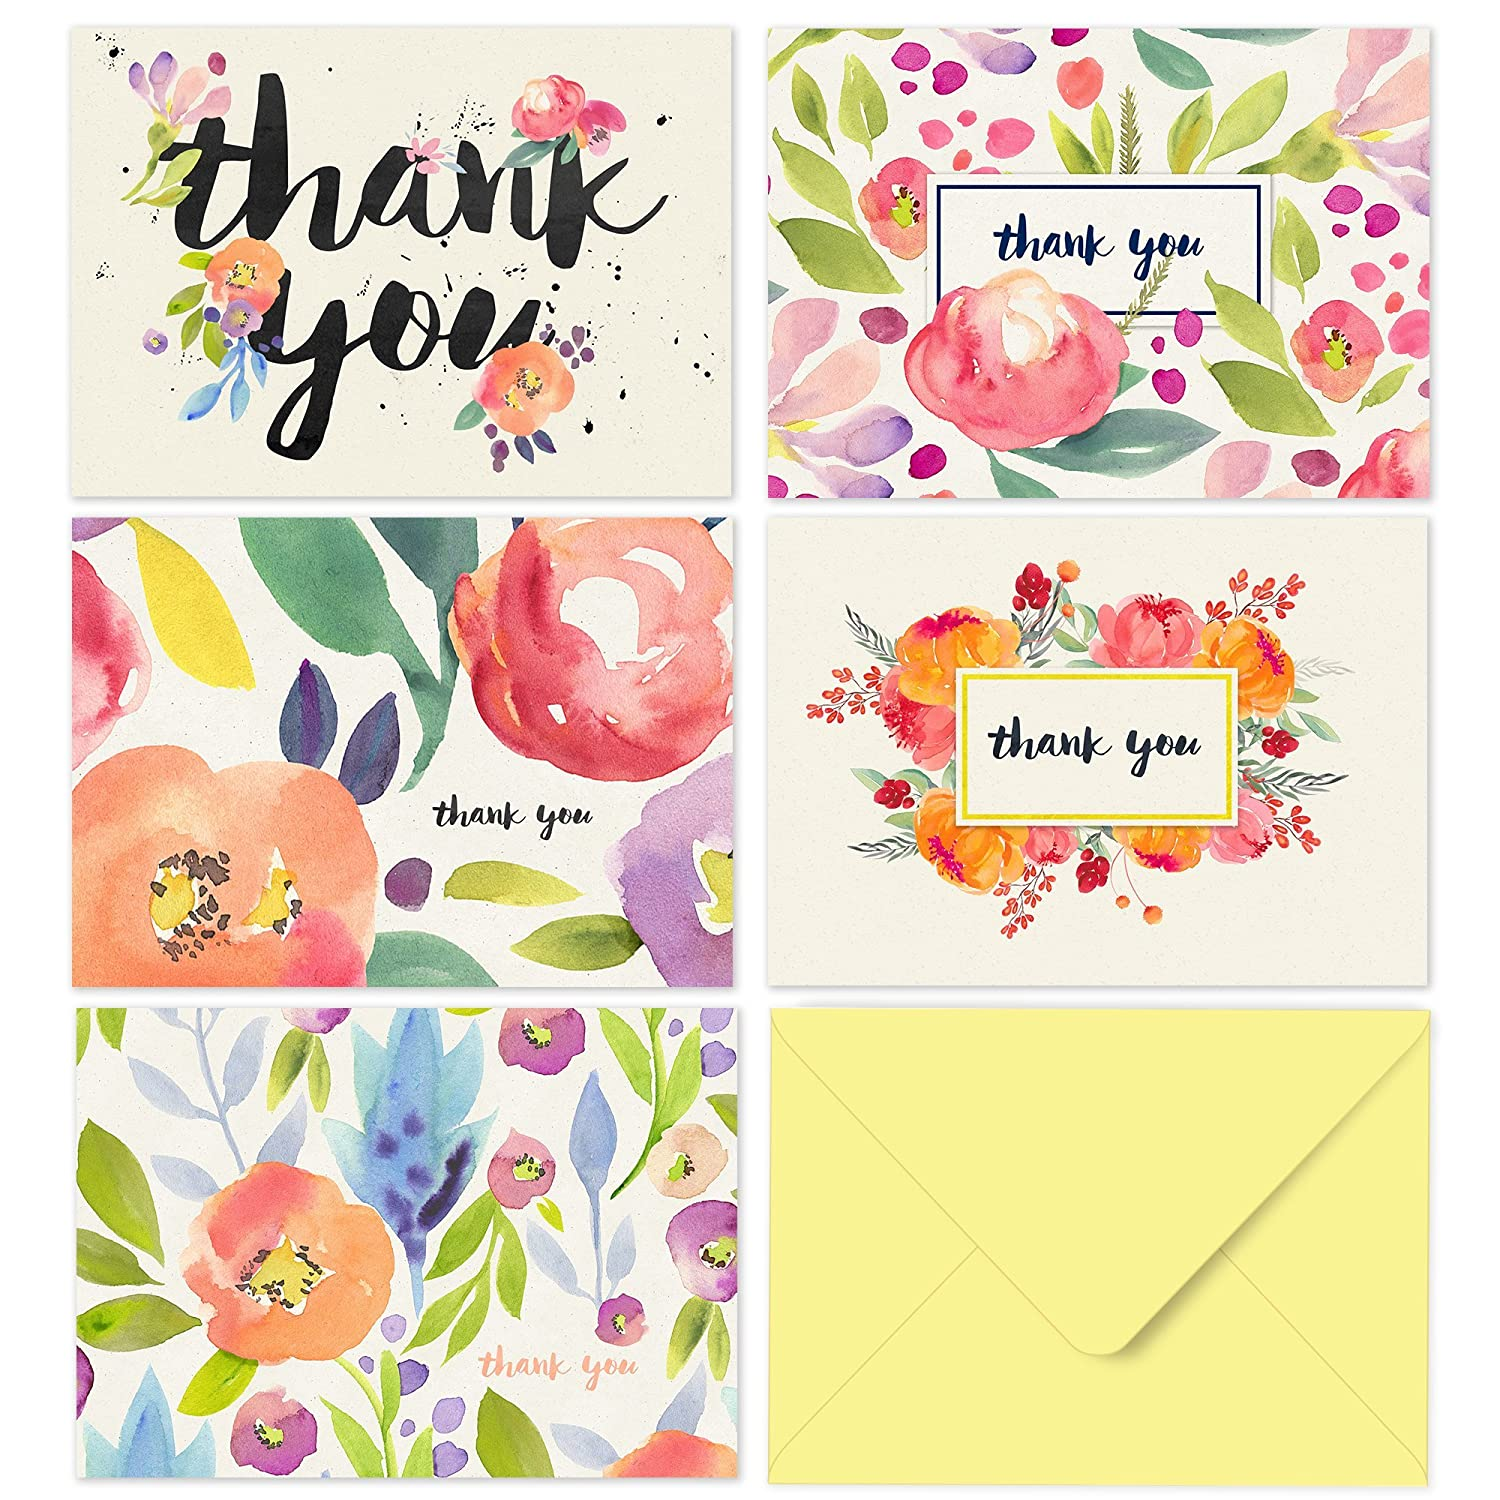 Greeting Cards | Shop Amazon.com